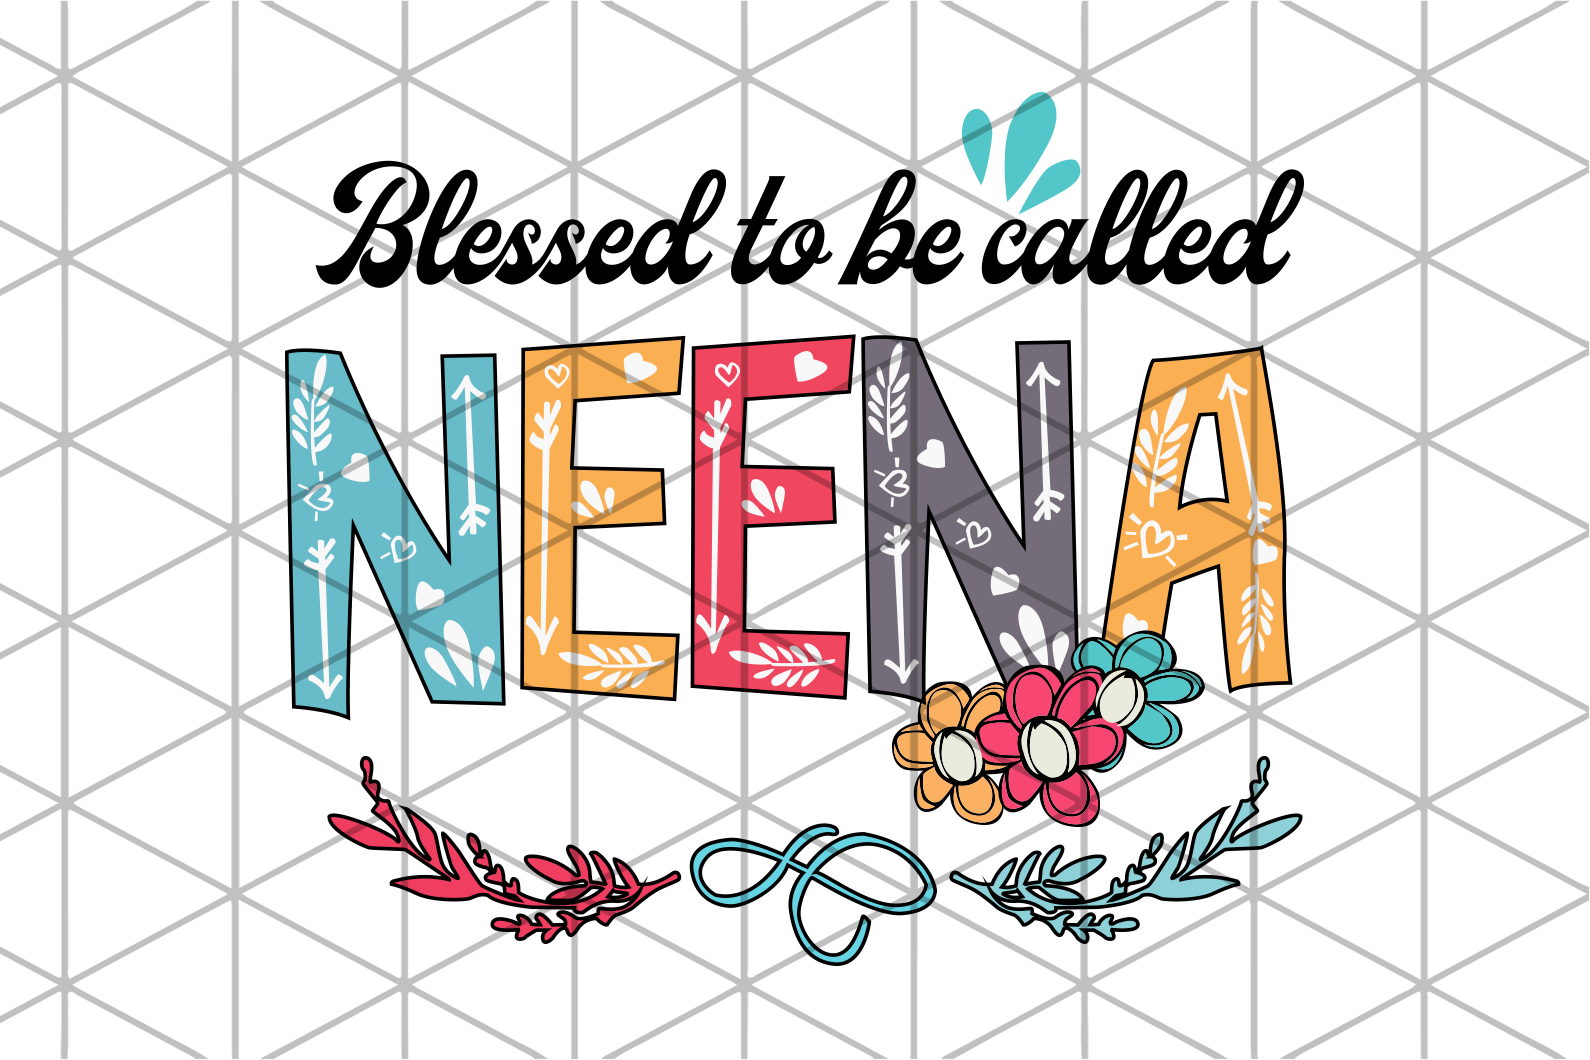 Blessed to be called neena svg,granny svg,neena svg,mother's day svg,gigi svg,grandma svg,blessed gigi svg,mawmaw svg,gift for mom,gift for mother,svg cut files, svg clipart, silhouette svg, cricut svg files, decal and vinyl,